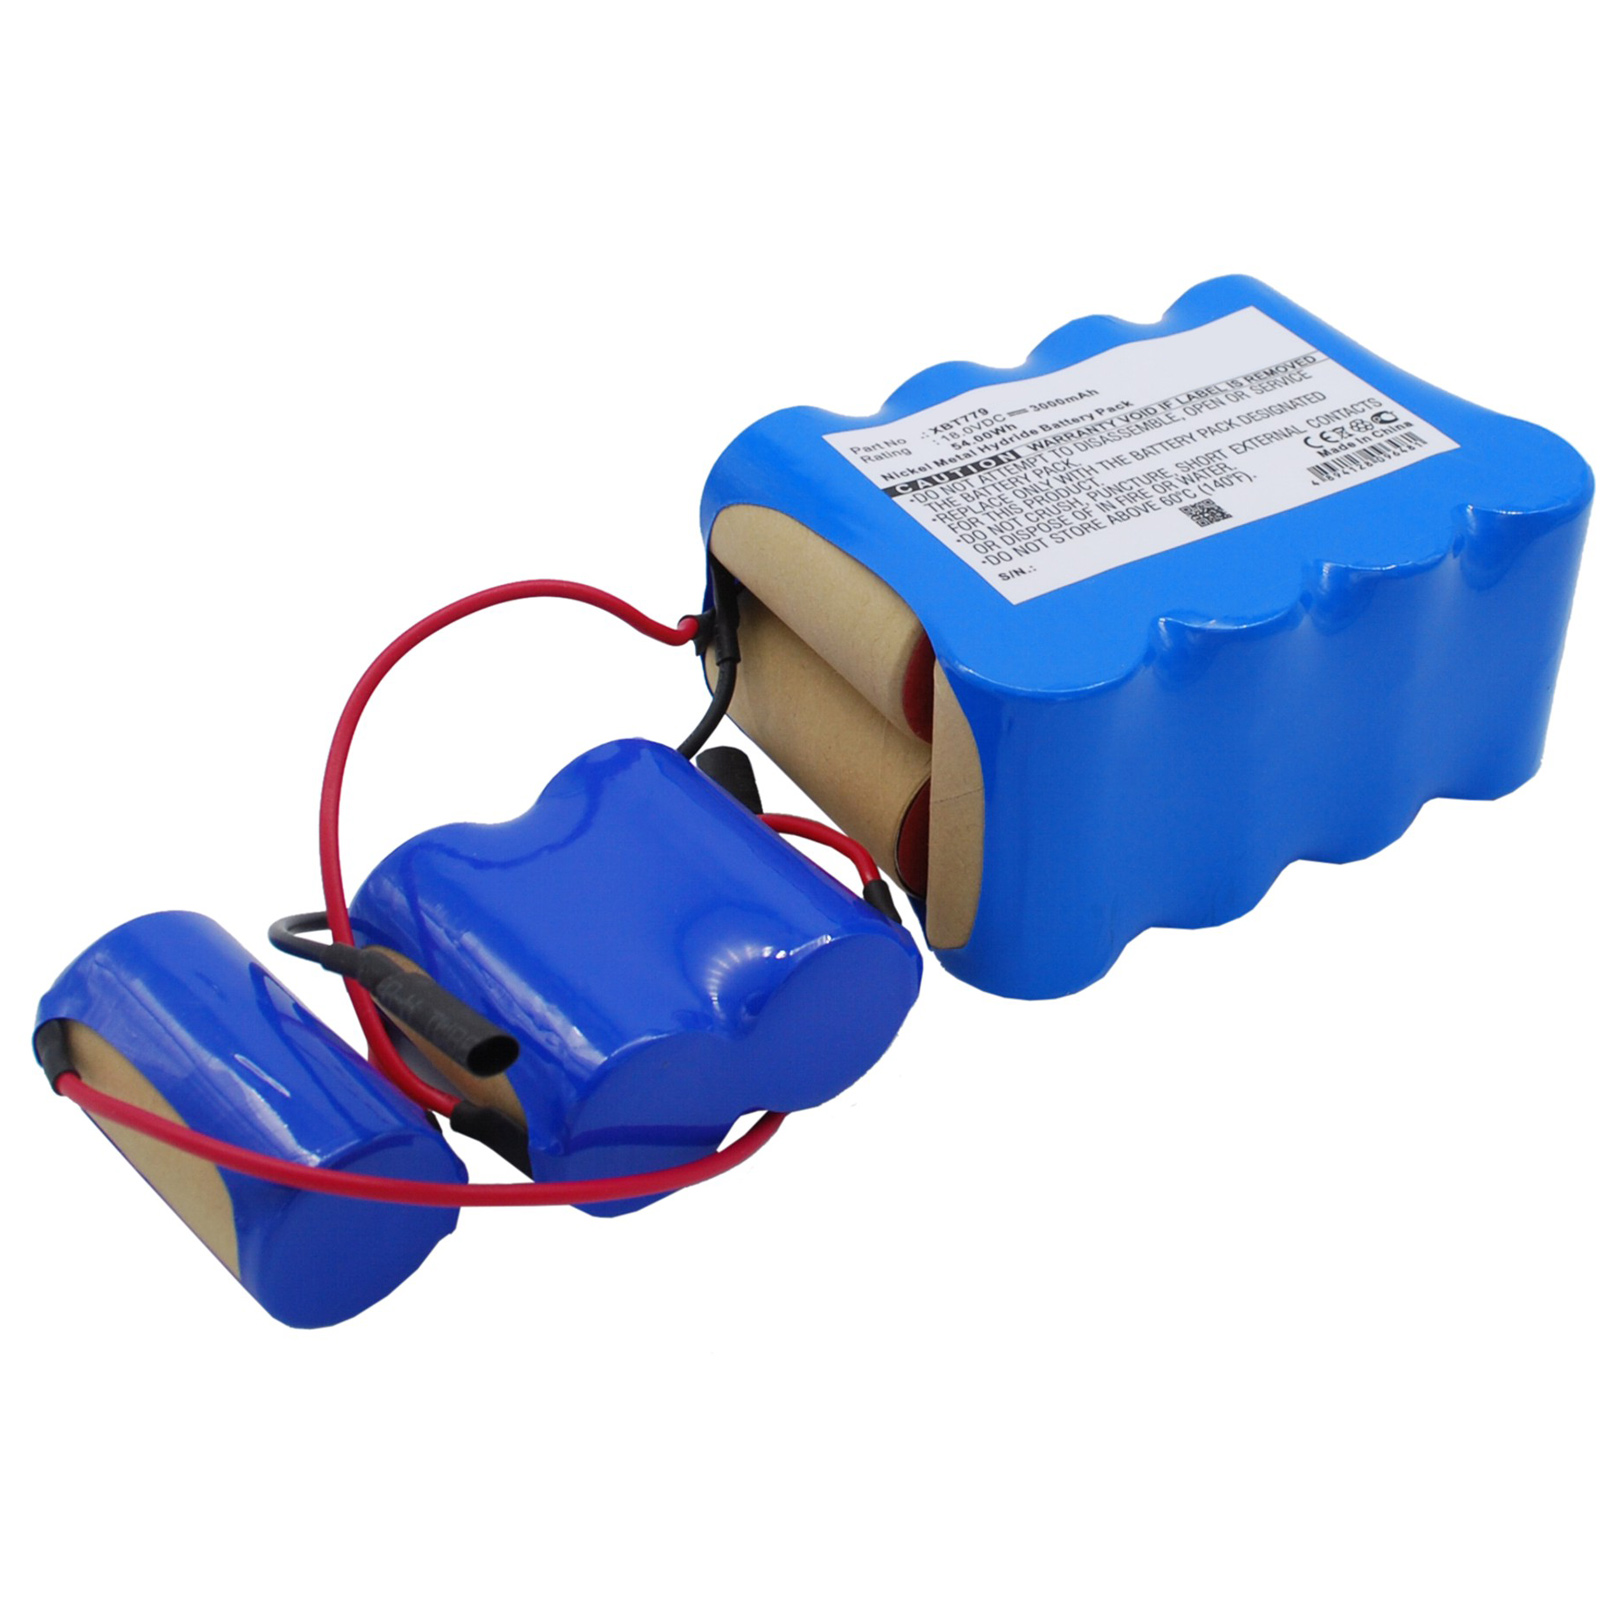 18v battery for euro pro shark sv780 vx33 pet perfect ii for Shark vacuum motor replacement